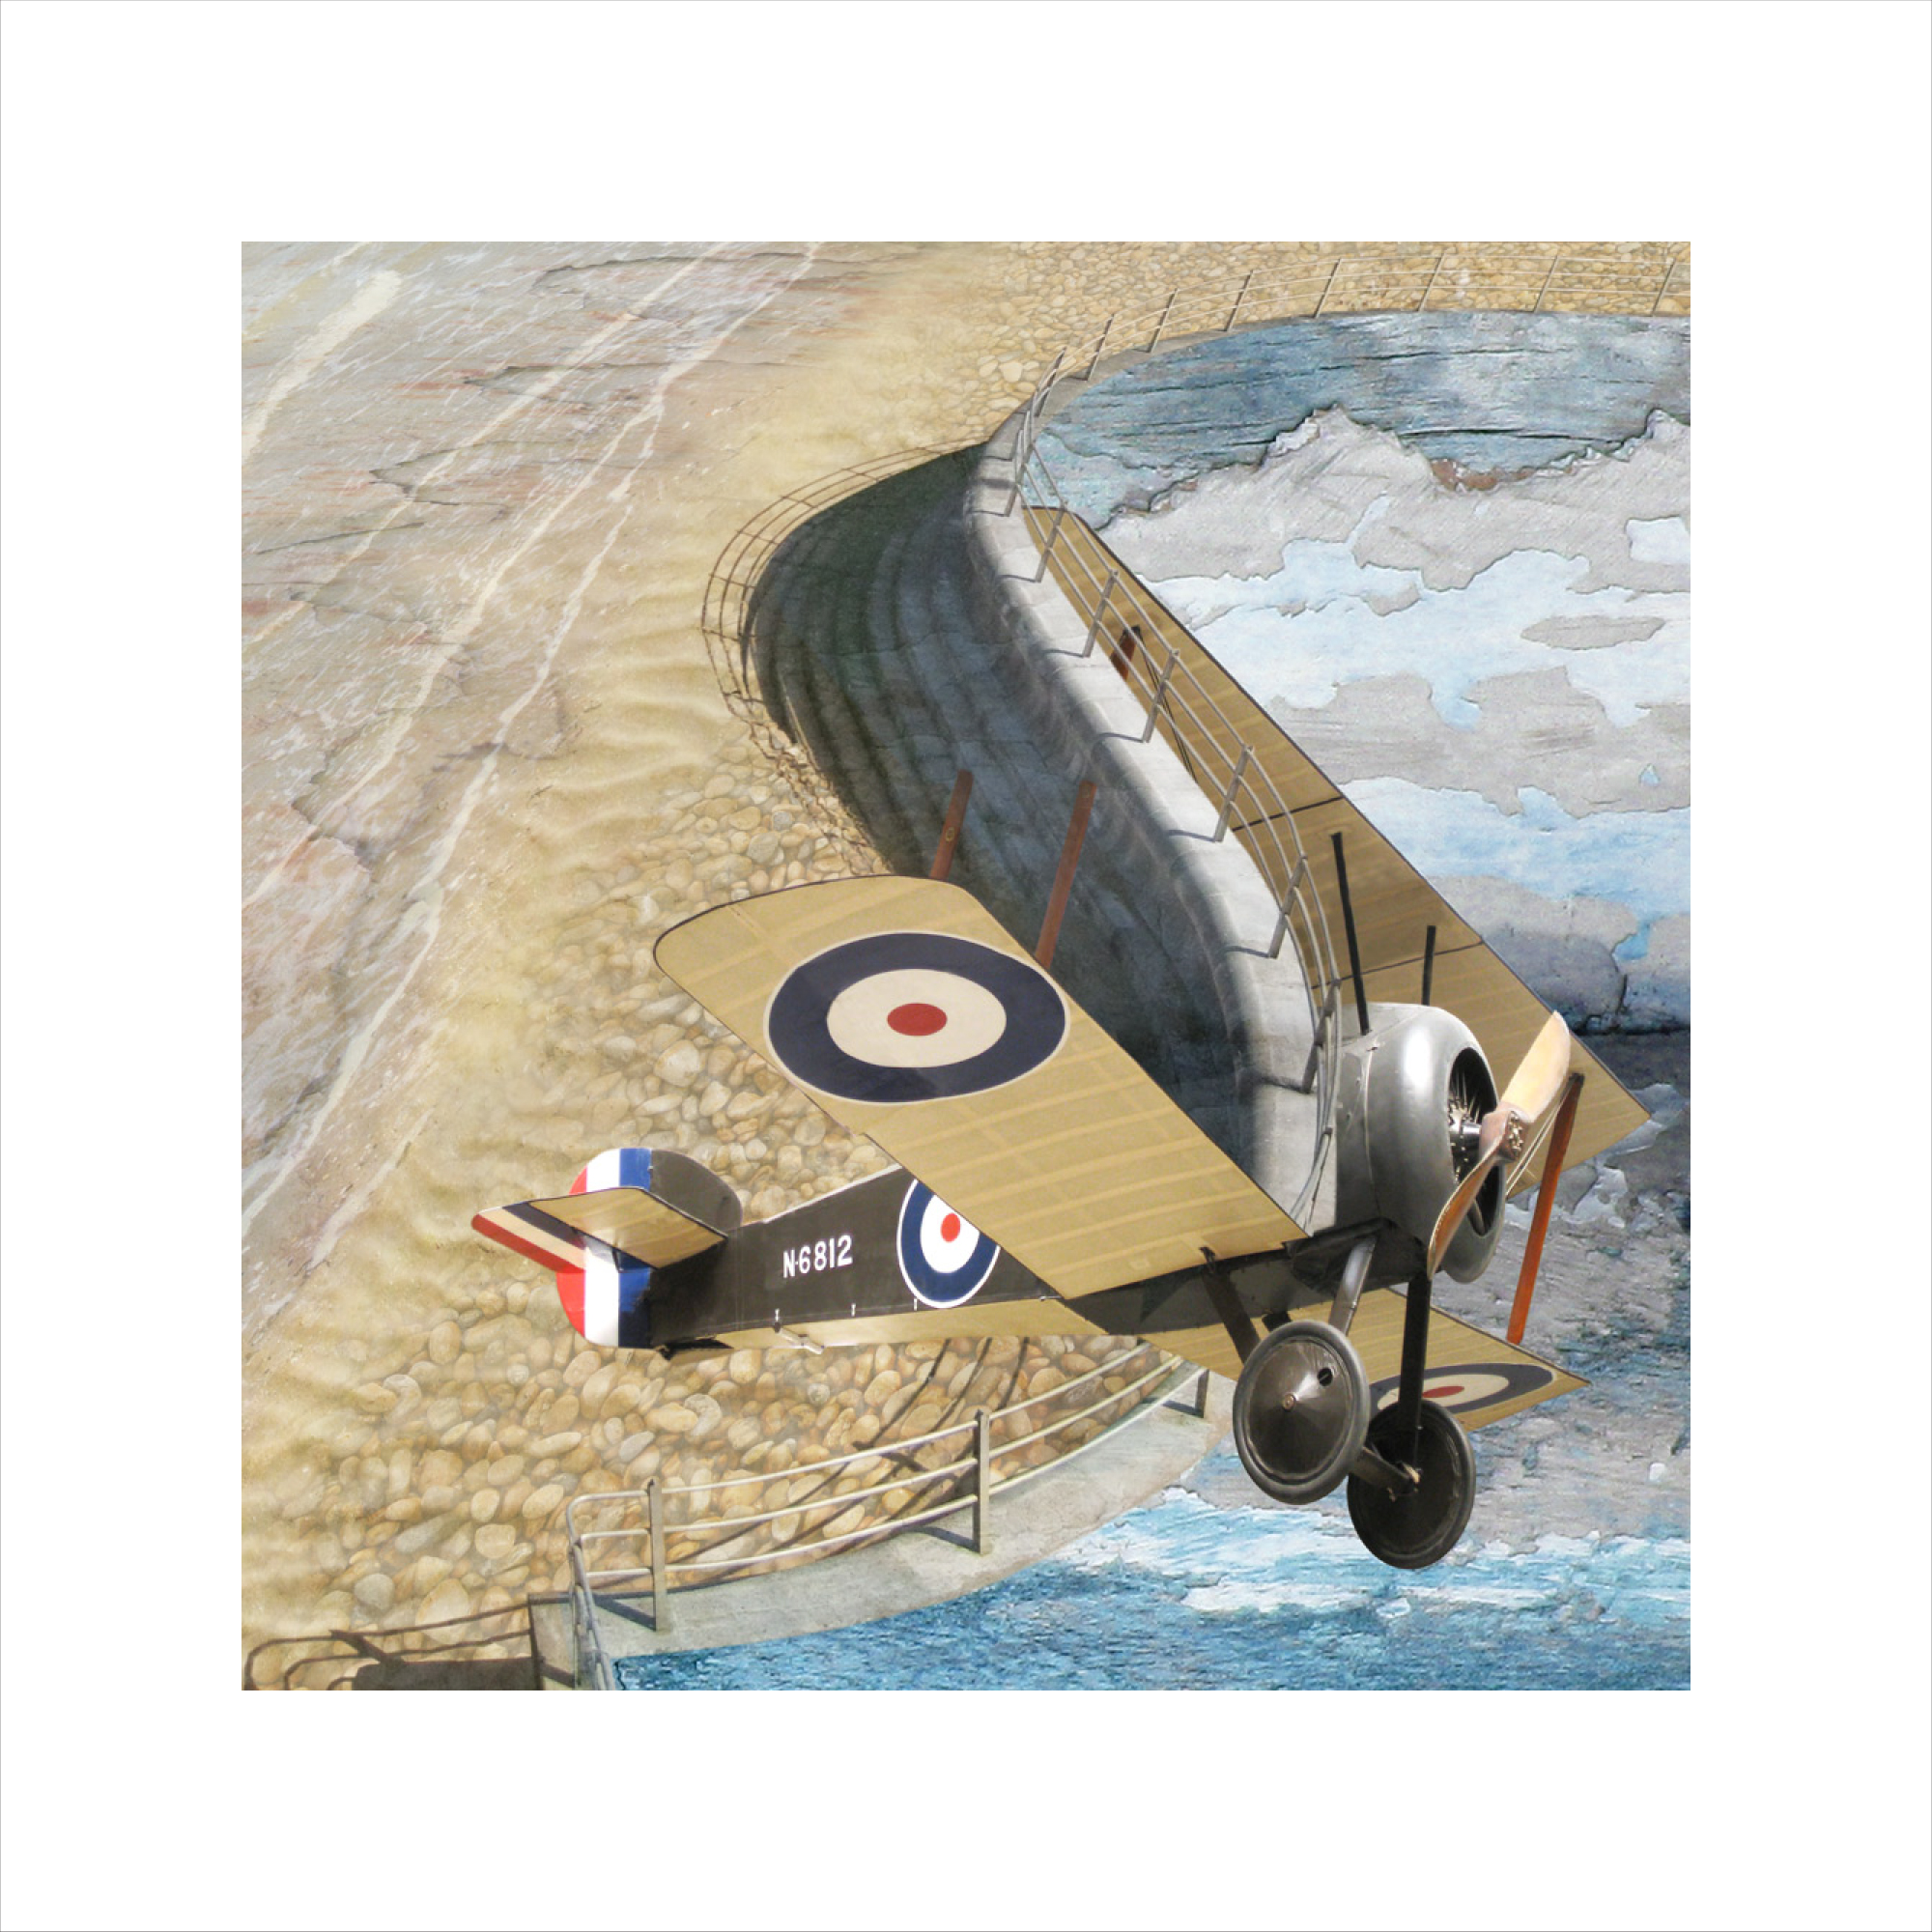 Claire Gill, Limited edition prints, digital photomontage, fine art prints, hahnemuhle, coastal art, Collect Art, seascape 17, Sopwith Camel, Imperial War museum, Broadstairs